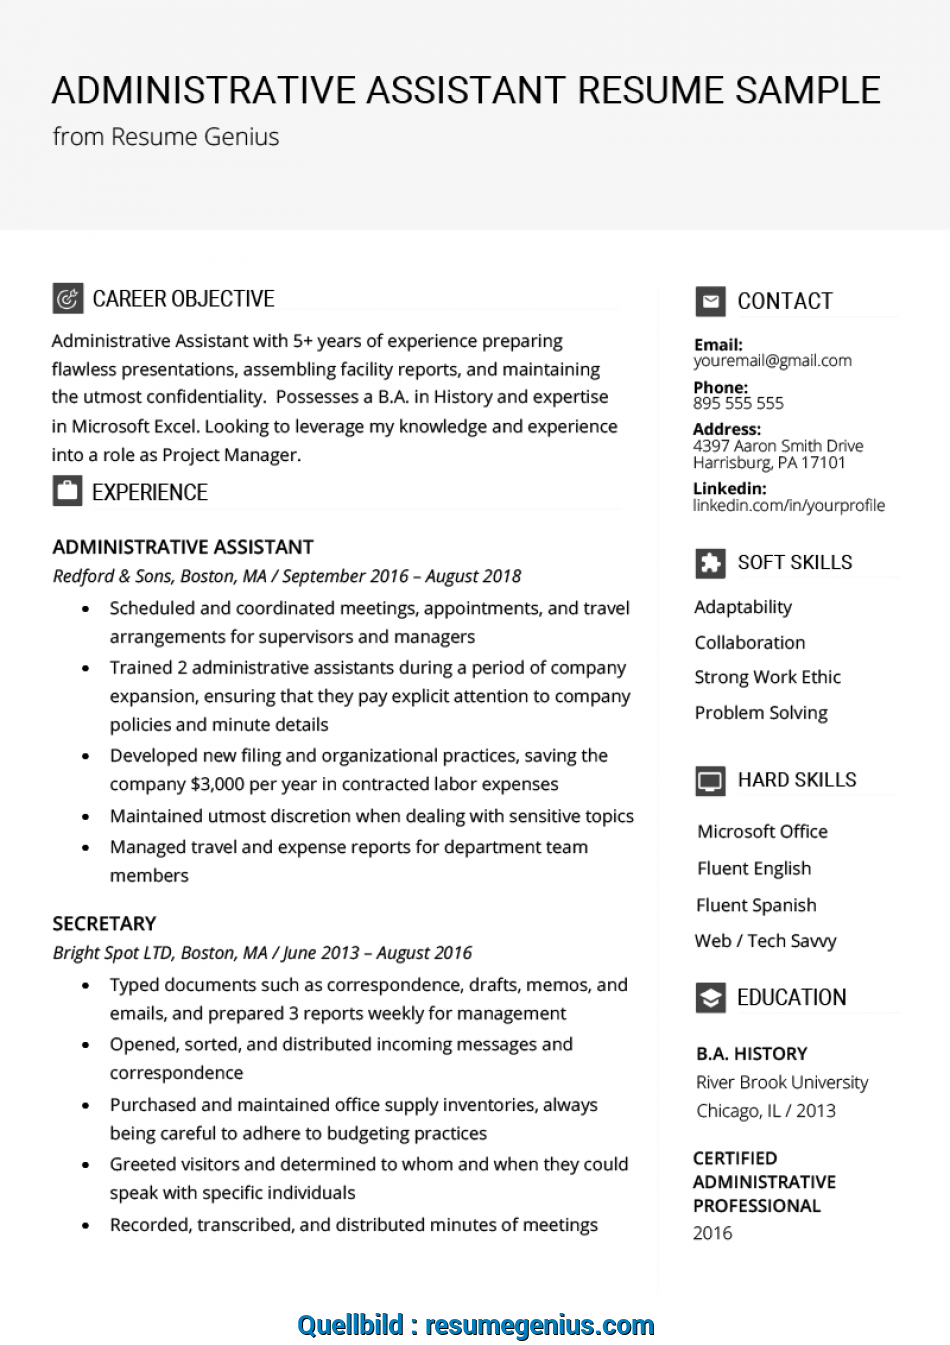 Prime Administrative Assistant Resume Example & Writing Tips ...